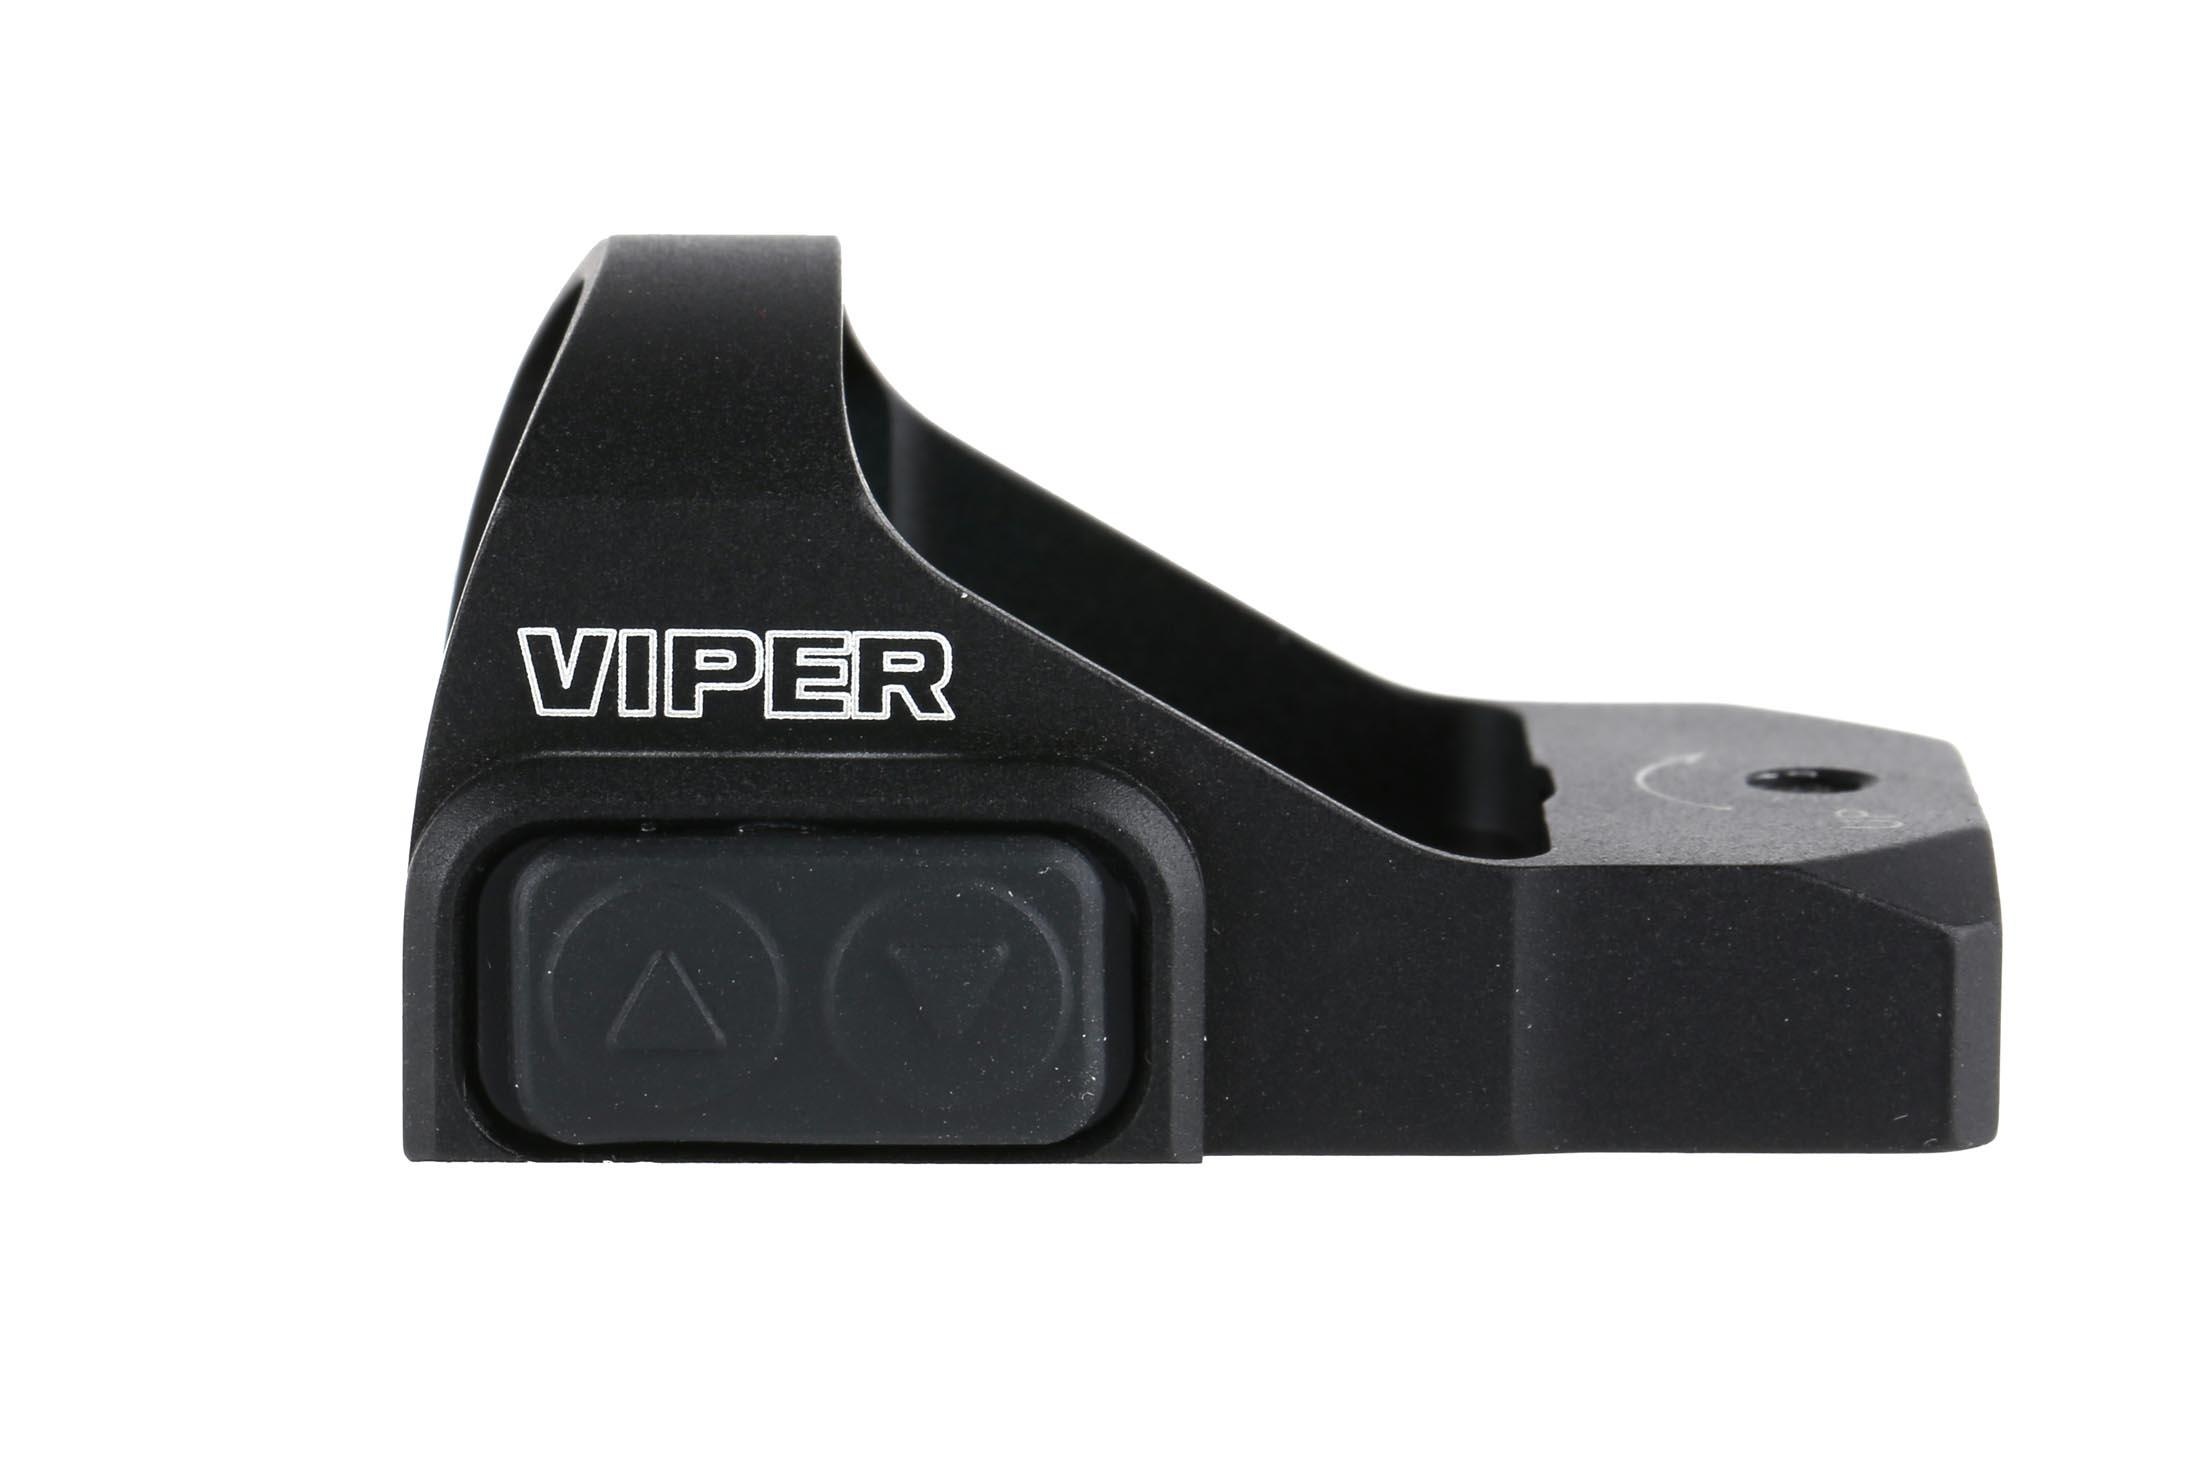 The Vortex 6 MOA red dot reflex sight has rubberized and weatherproof illumination setting buttons